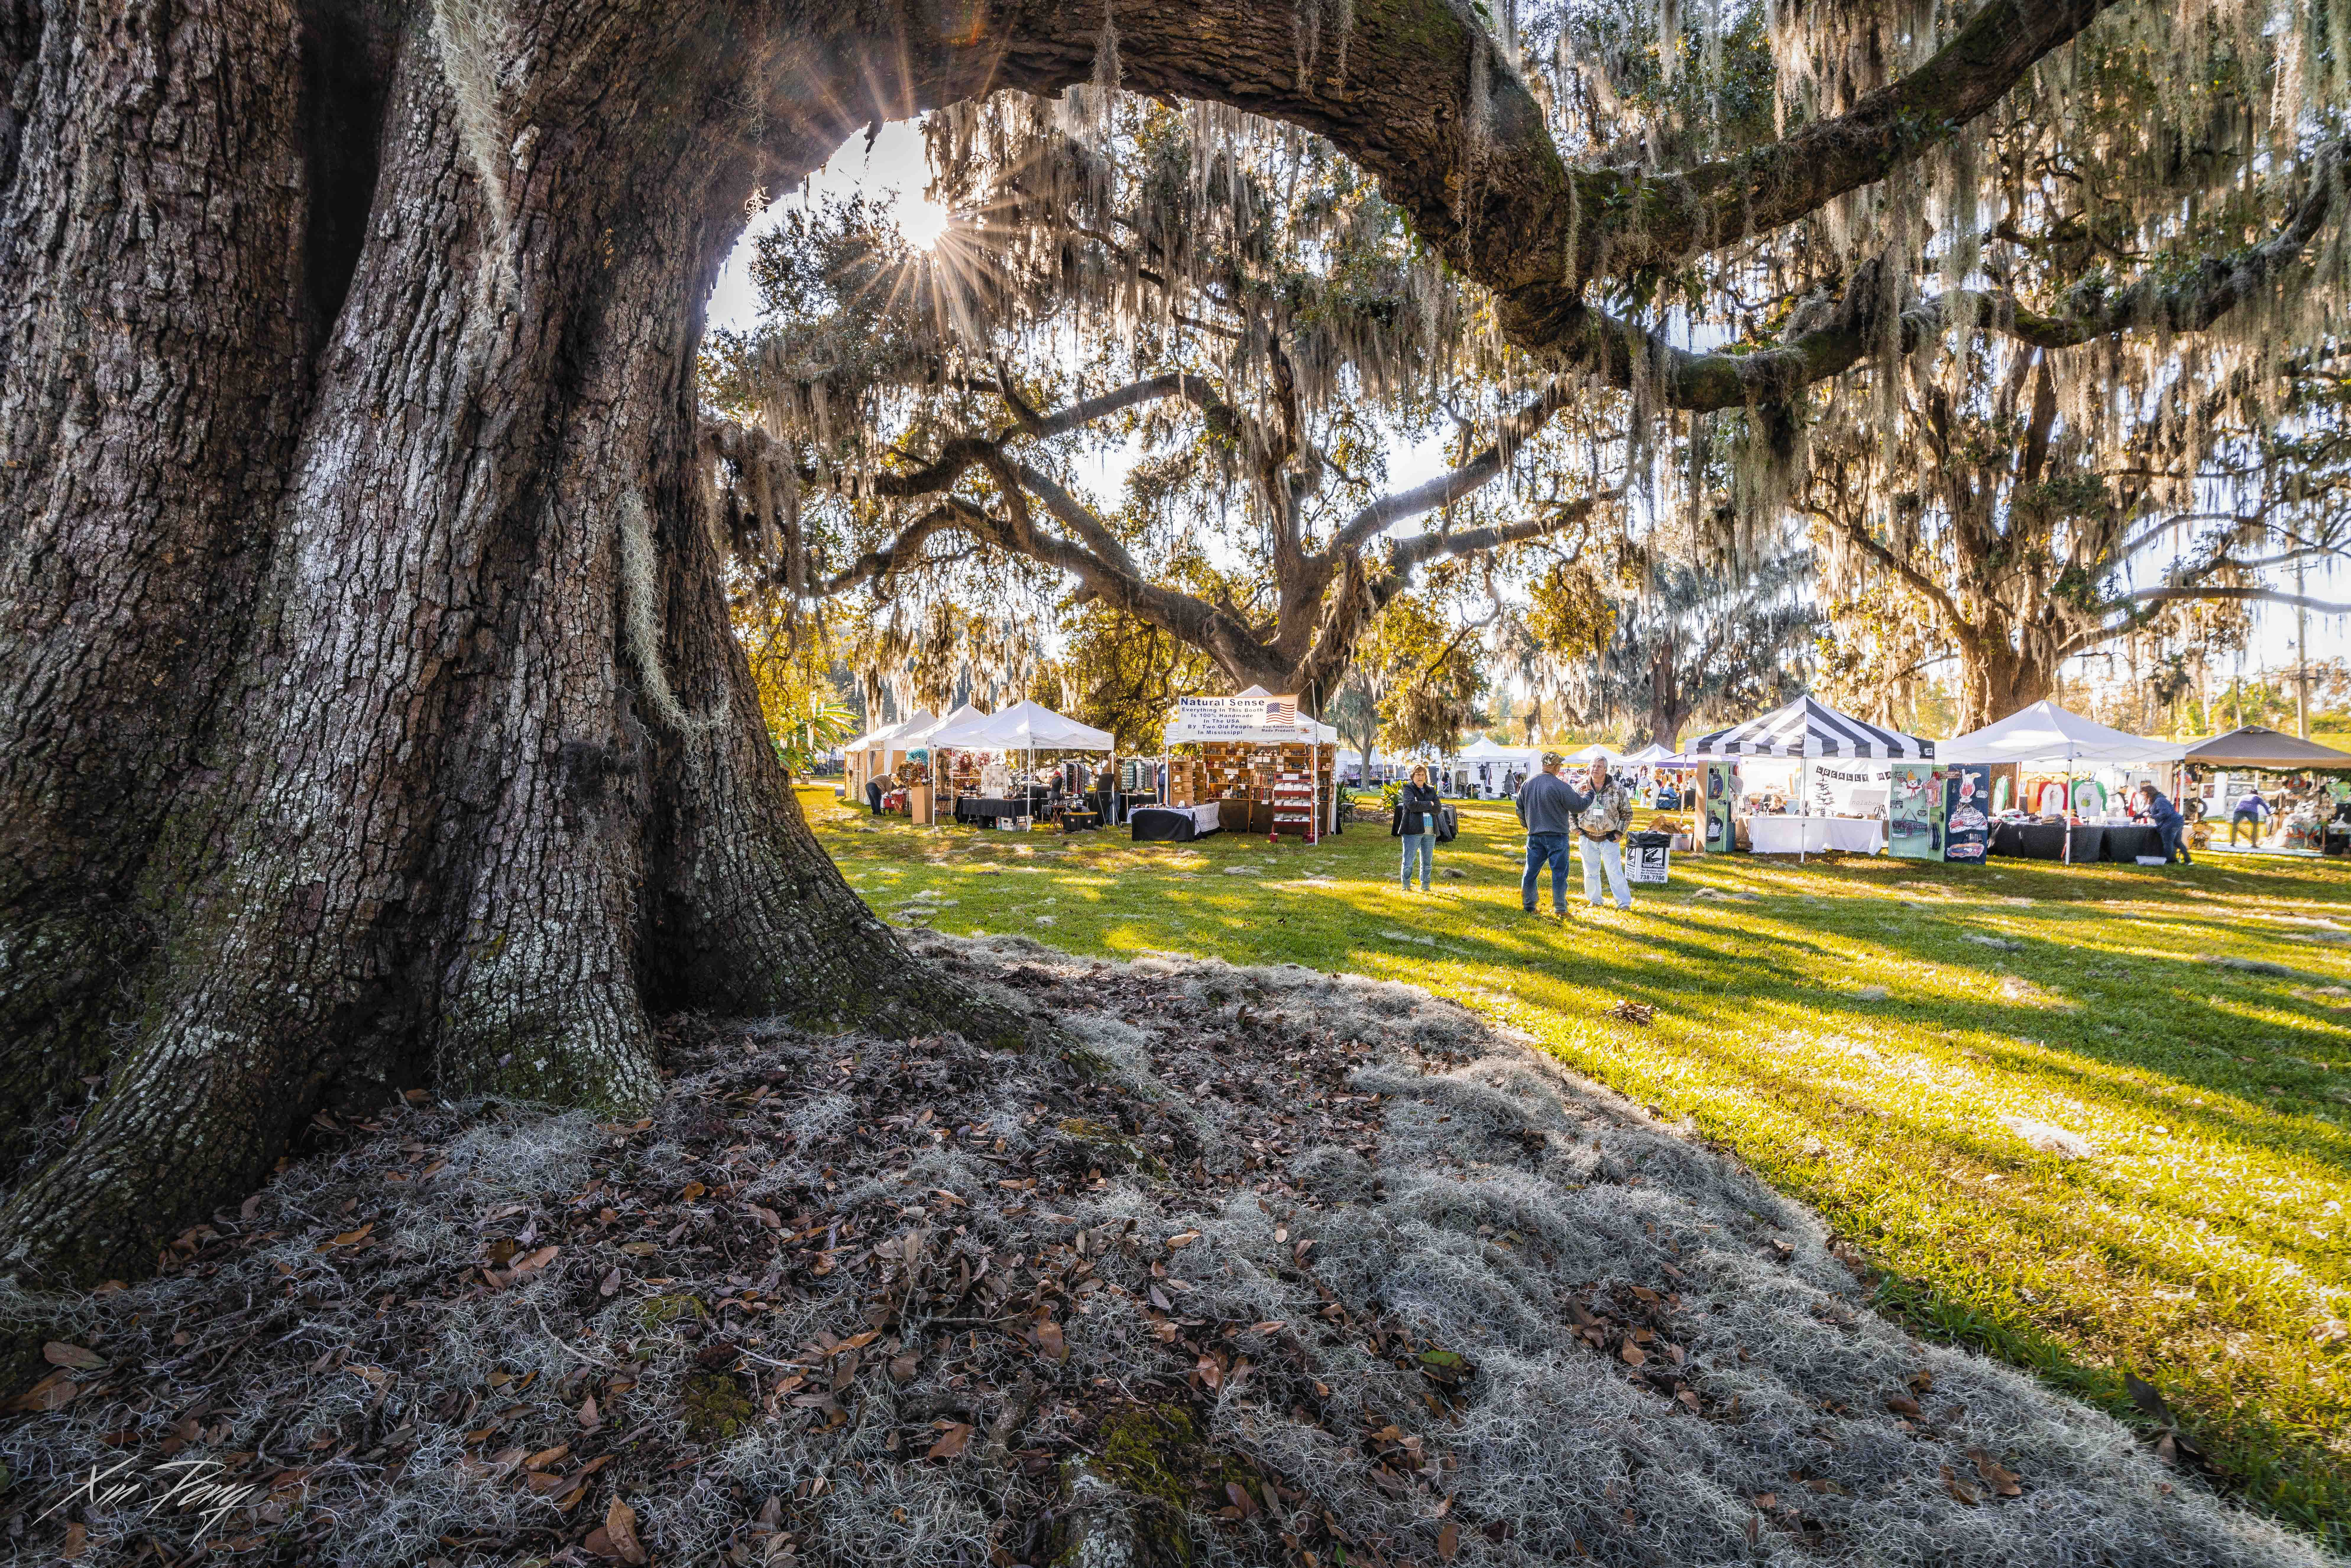 Fall Festivals 2020 Near Me.Fall Festival 2020 Destrehan Plantation